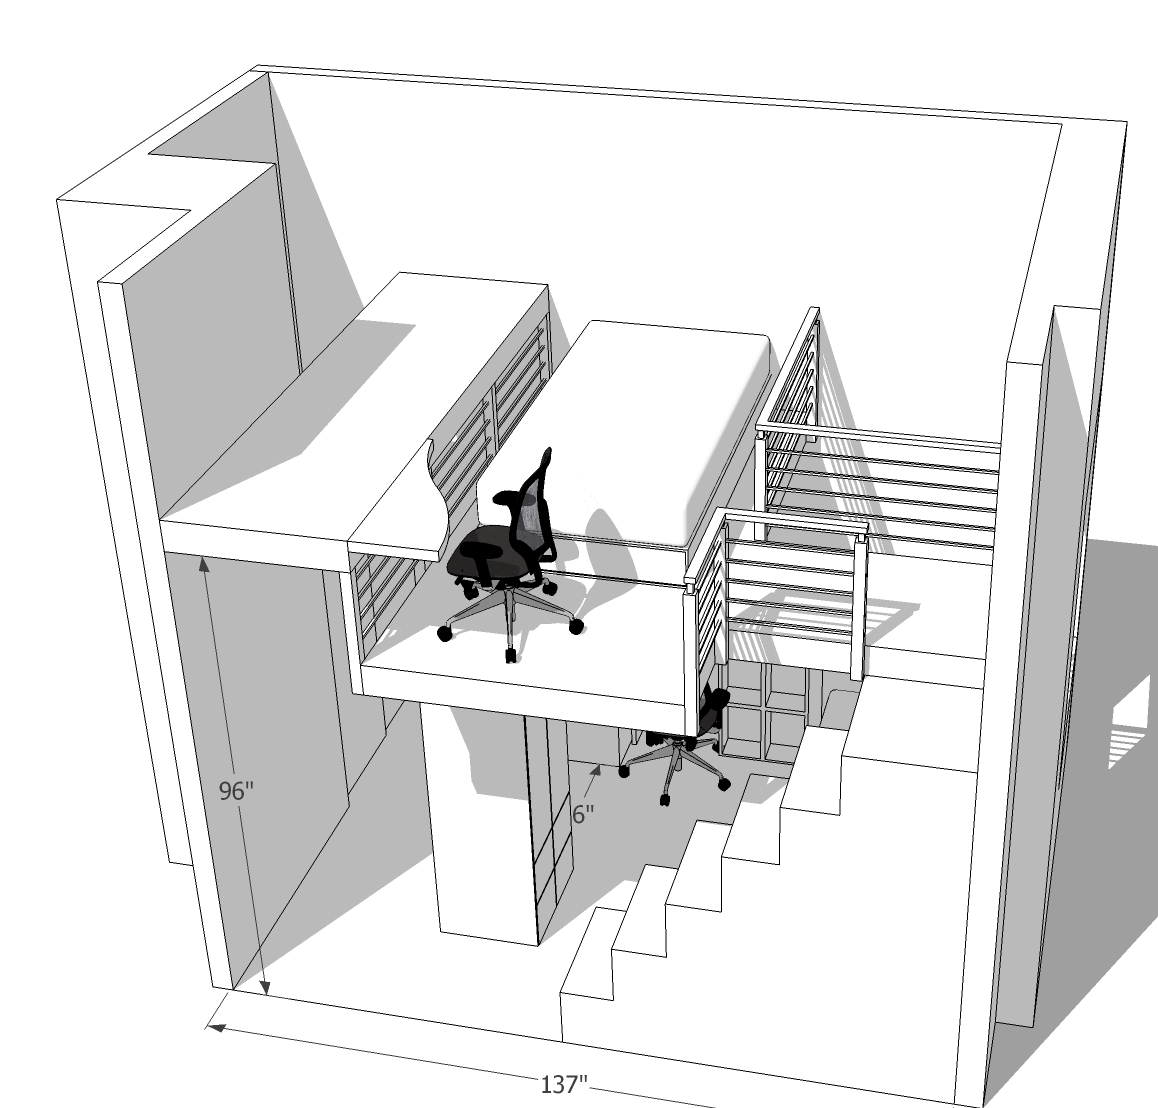 """- Plans for a big kids loft in Cobble Hill, BK:Big staircase with storage,desk custom designed to allow entry into room (door was down on left, 96"""" tall).Two armoire/closets create structural elements for loft above, and also give the room more storage!"""